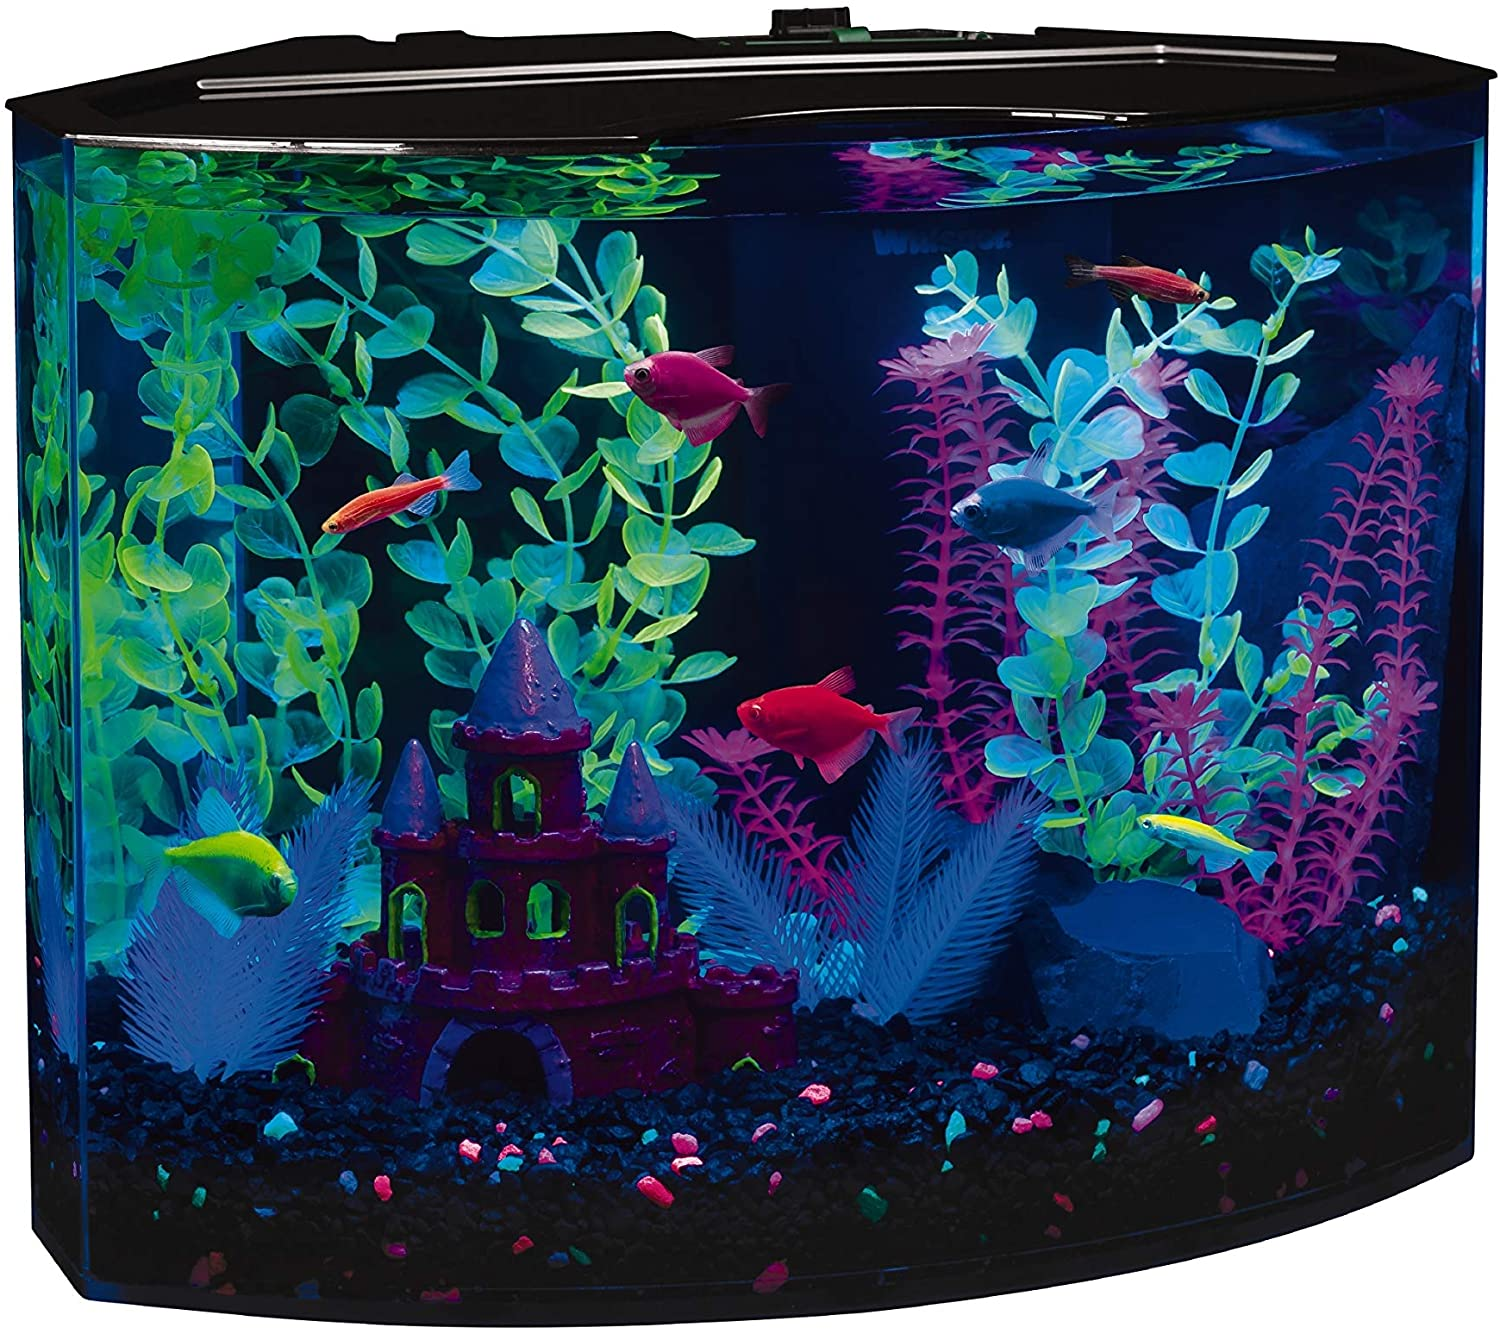 GloFish Glow In The Dark Fish tank 3